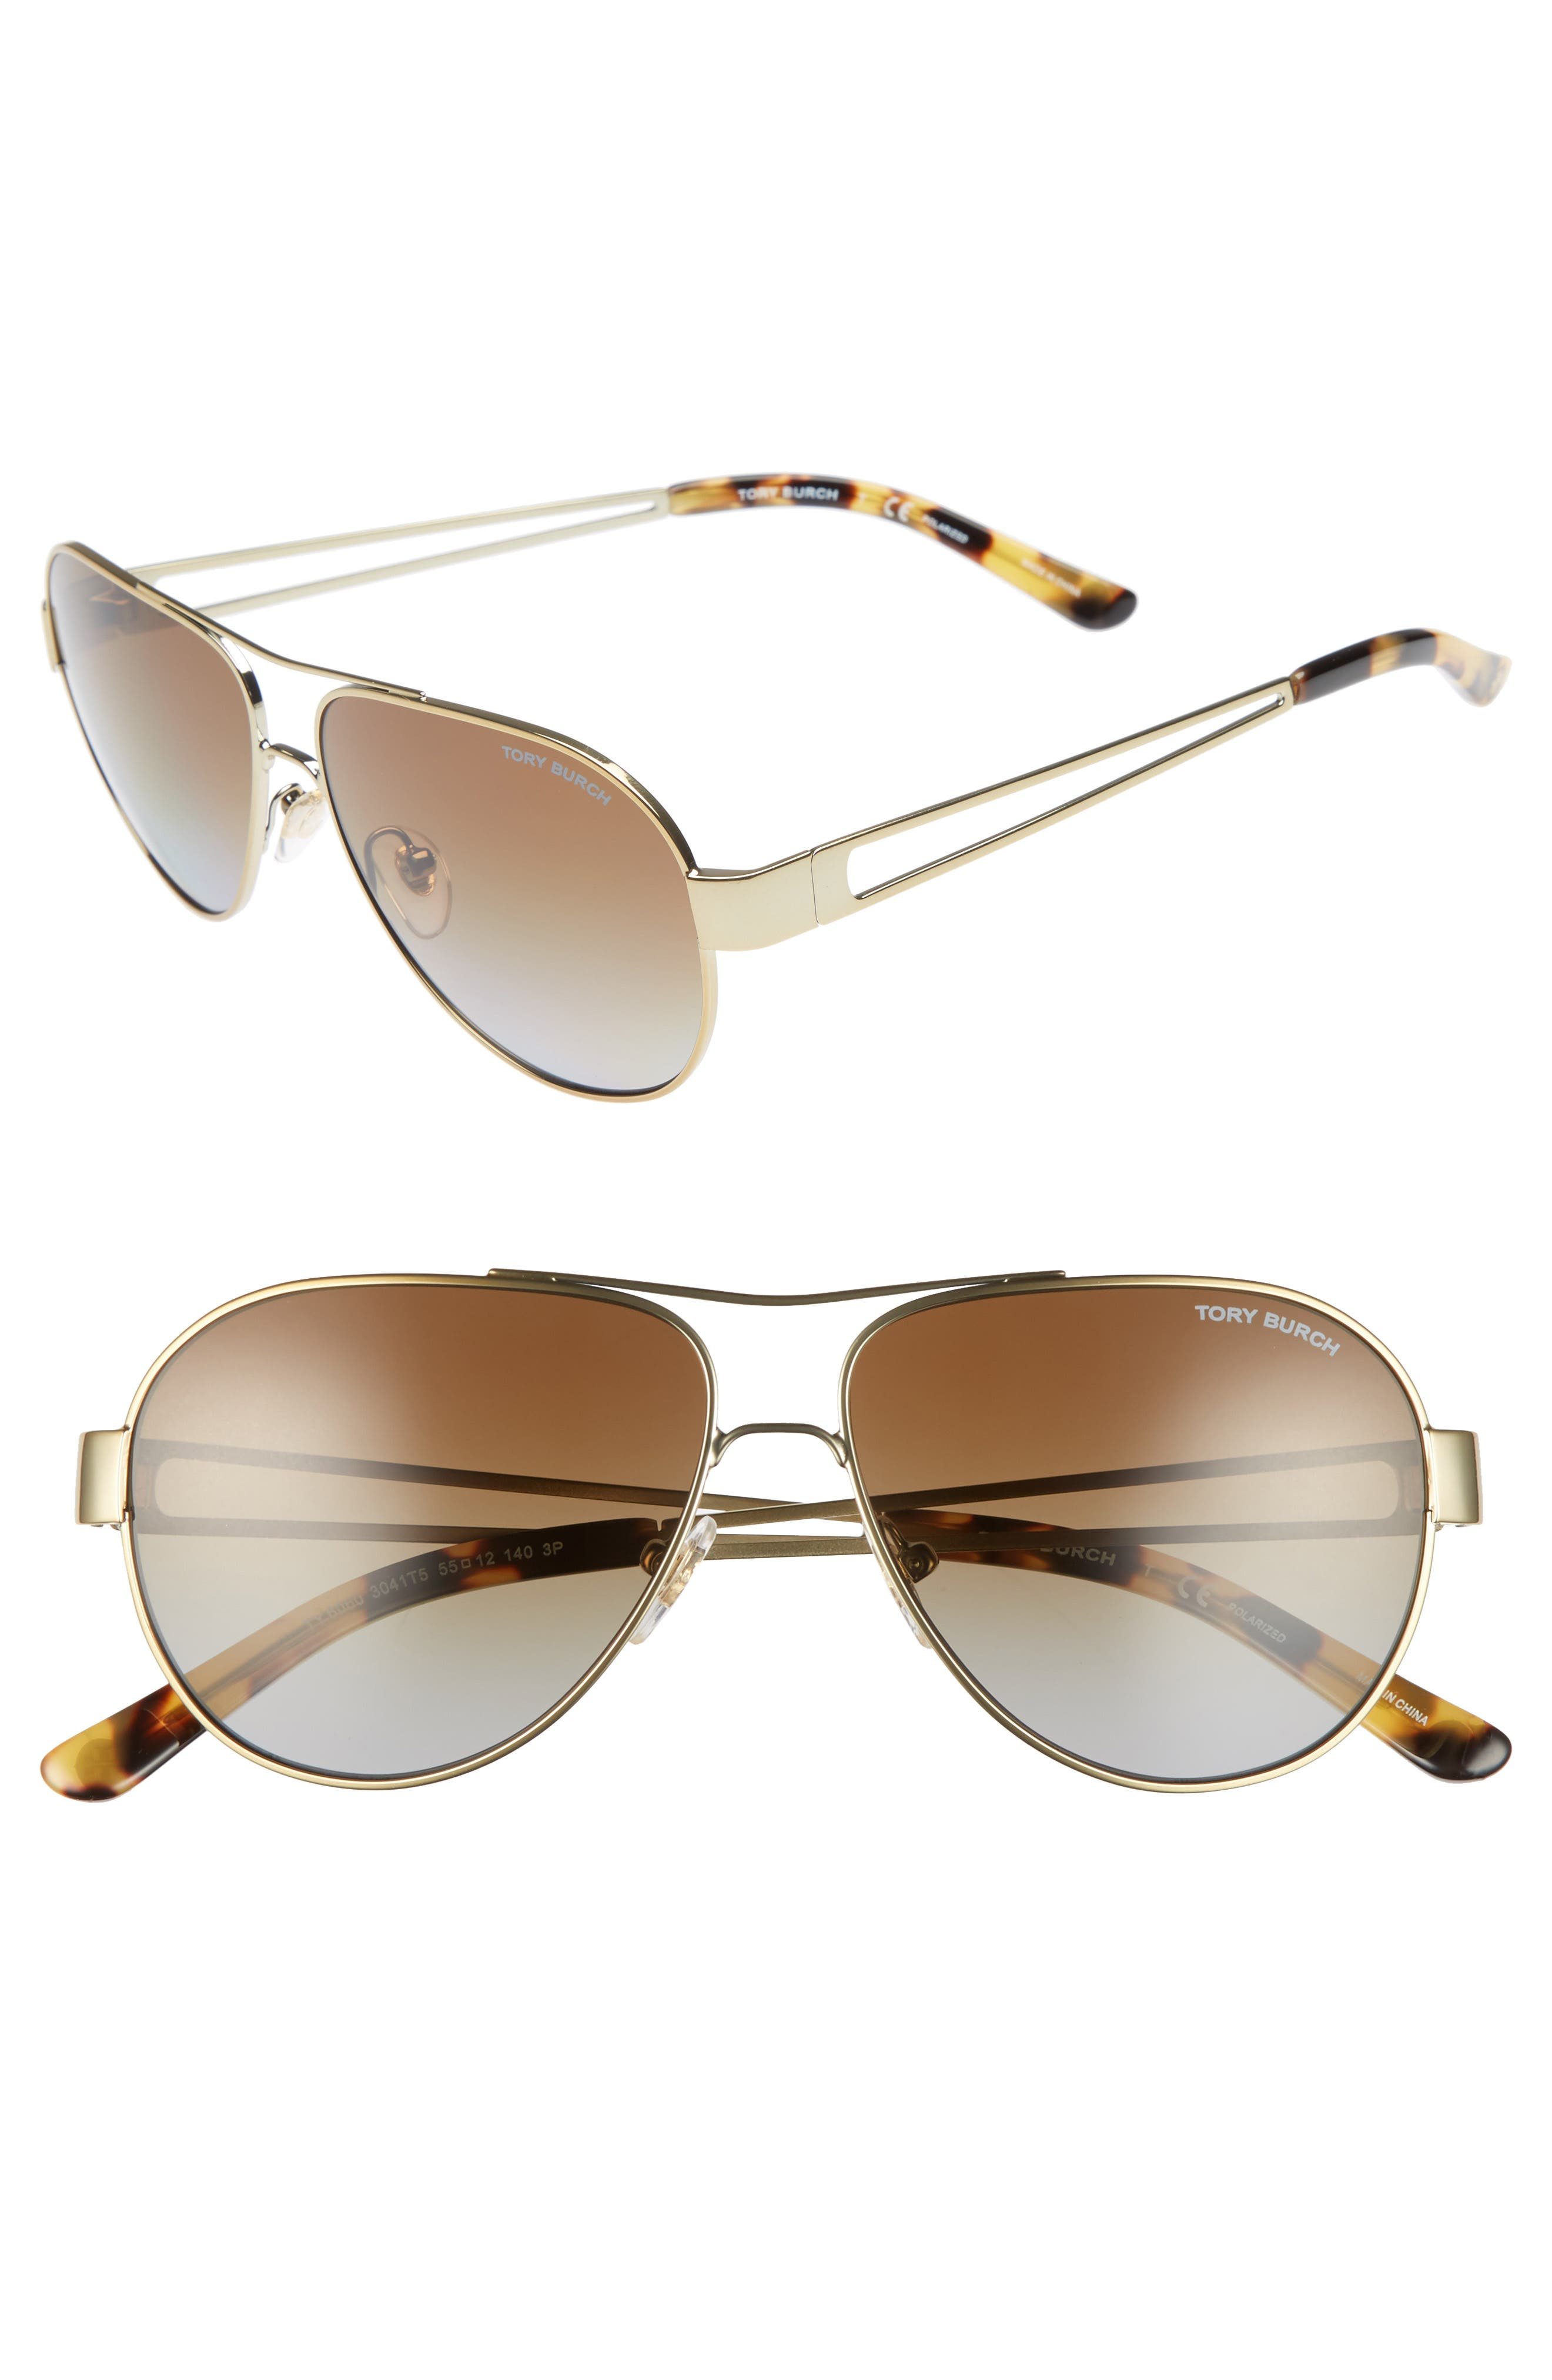 Alternate Image 1 Selected - Tory Burch 55mm Polarized Aviator Sunglasses